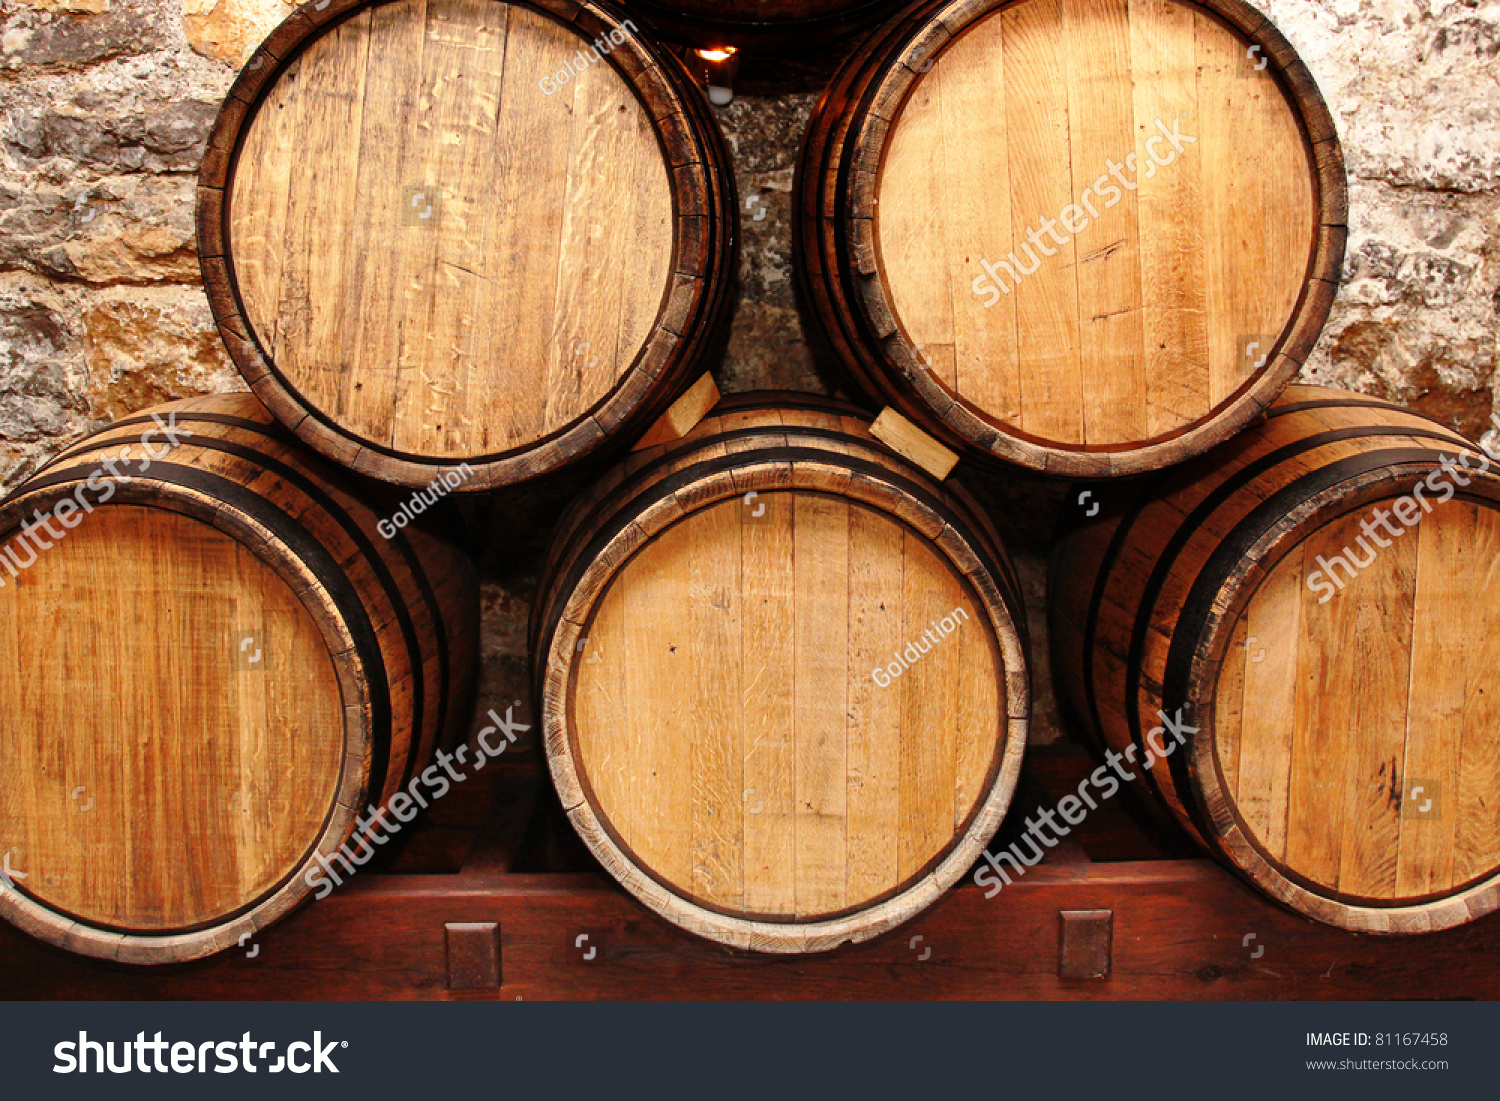 Storage oak wine barrels Amazon Alamy Close Up View At Lot Of Barrels In Storage Ez Canvas